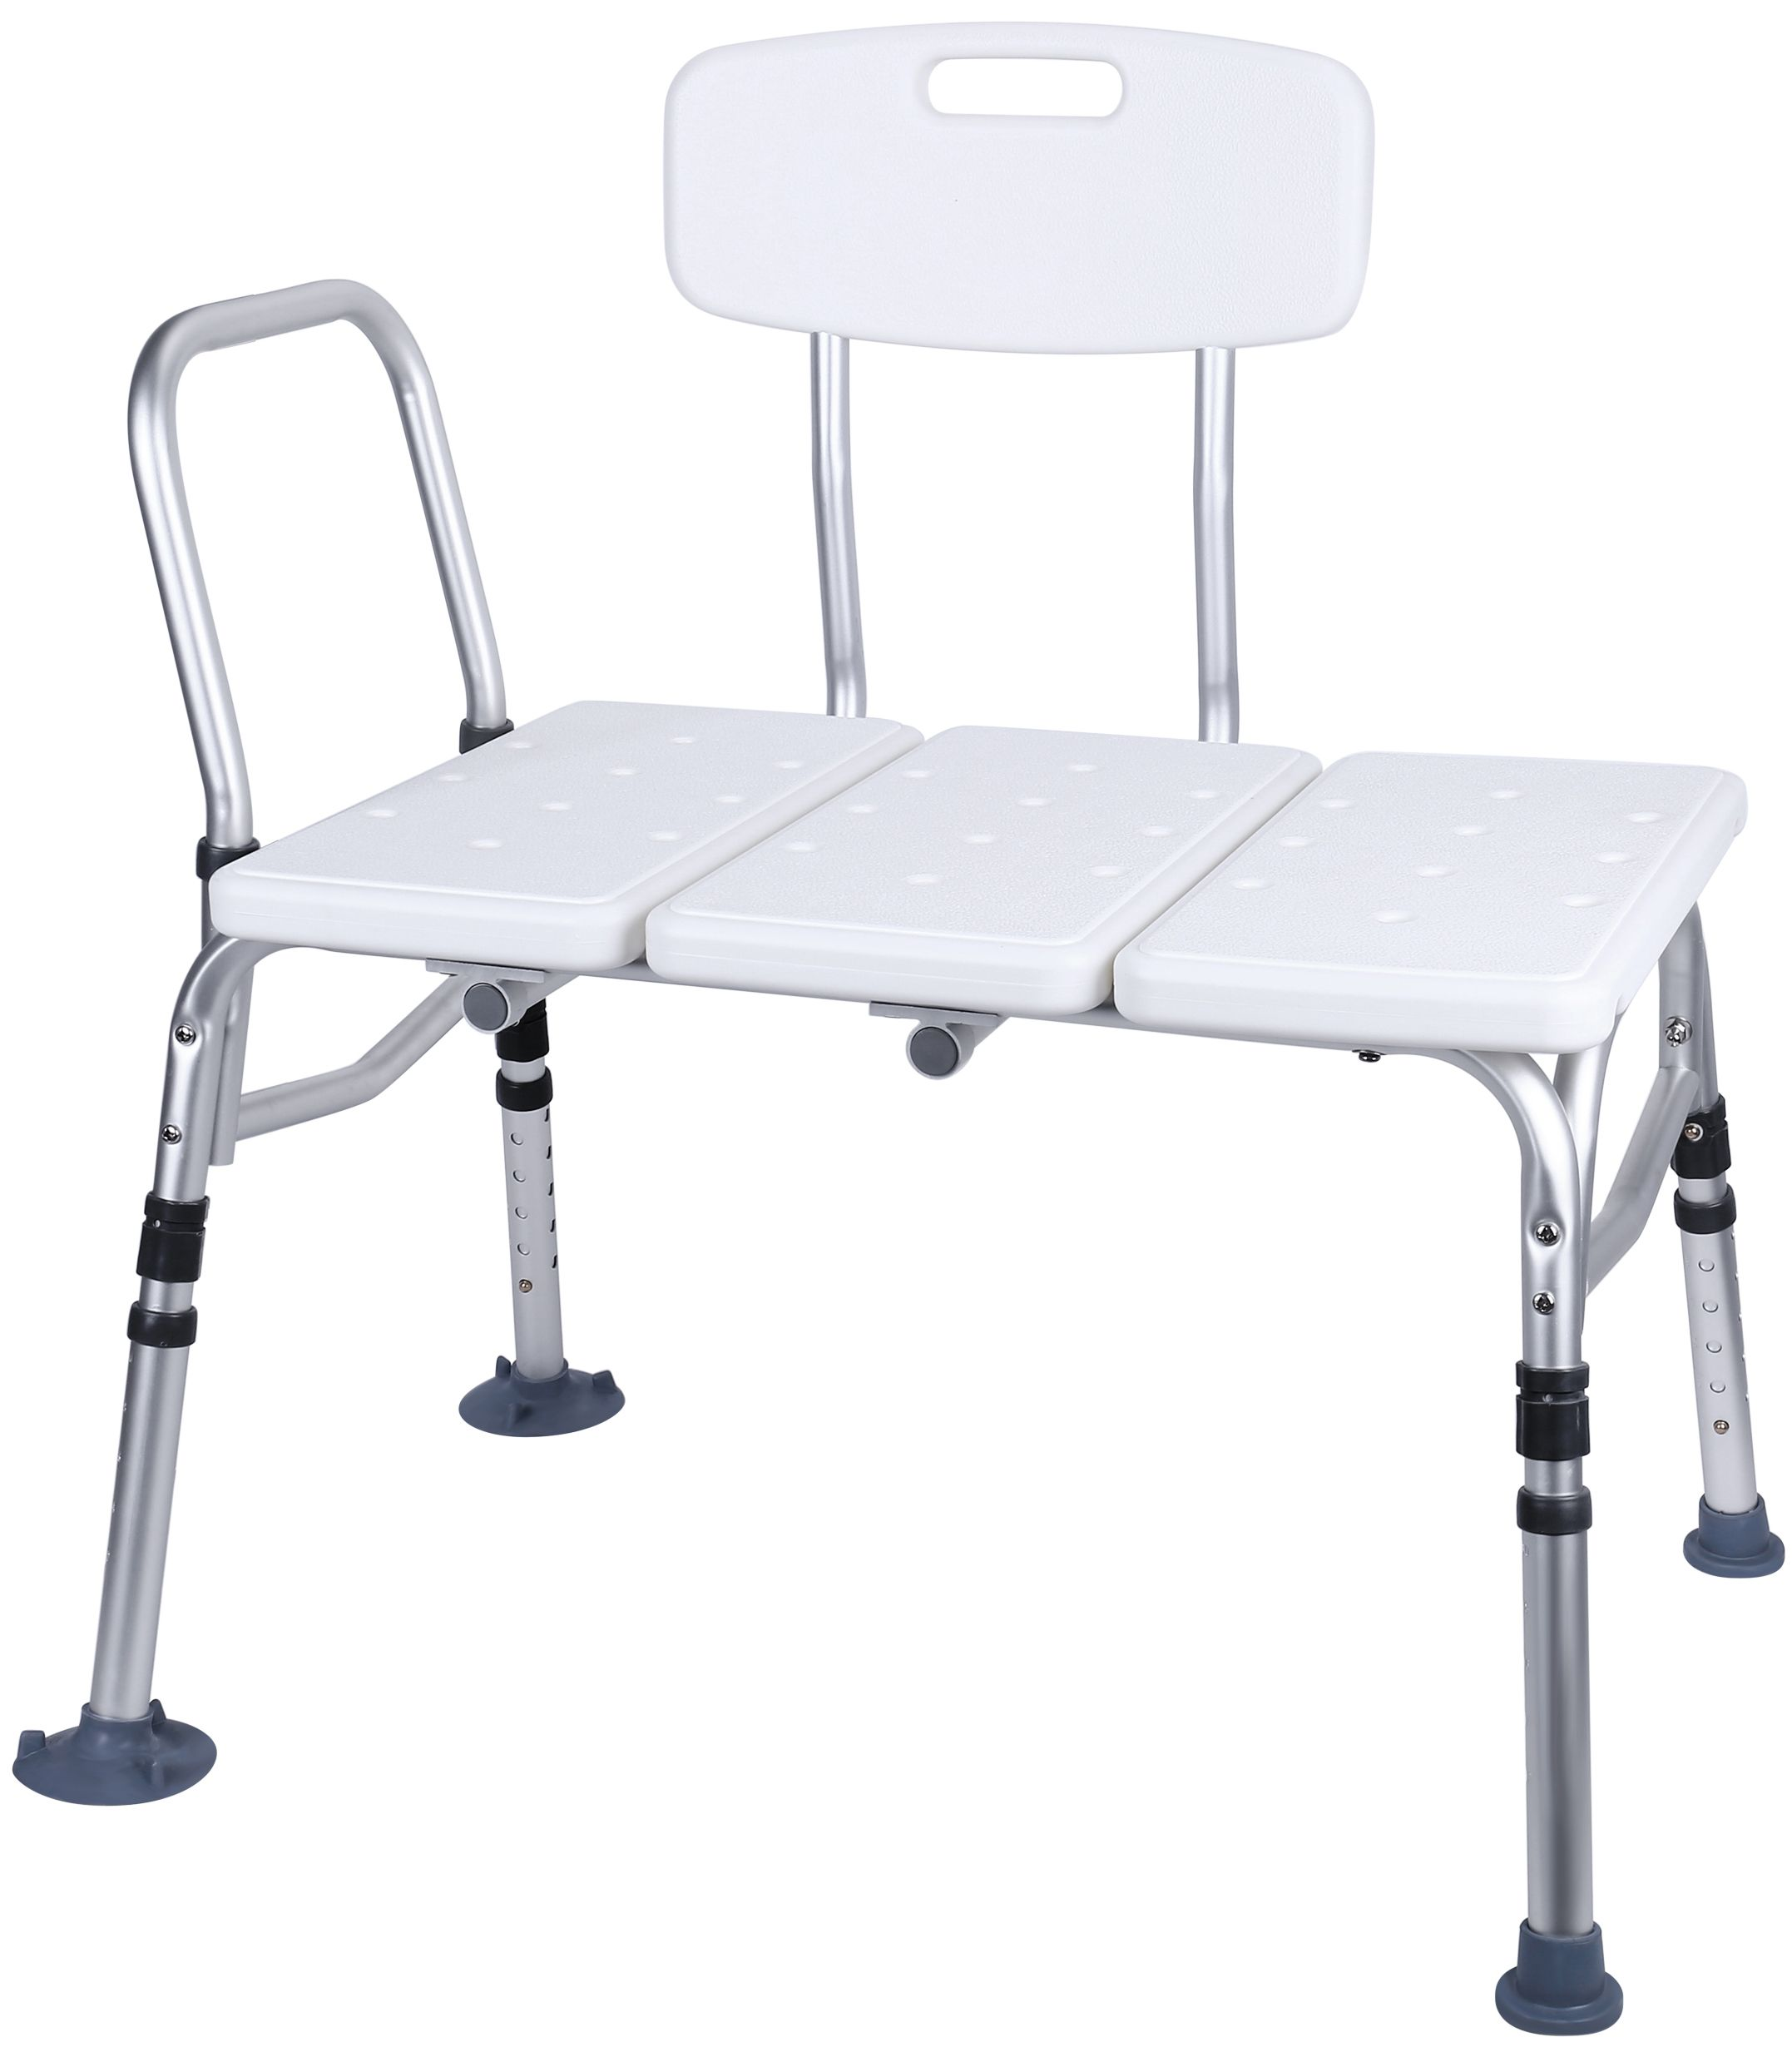 Health With Images Shower Tub Shower Bench Bath Seats